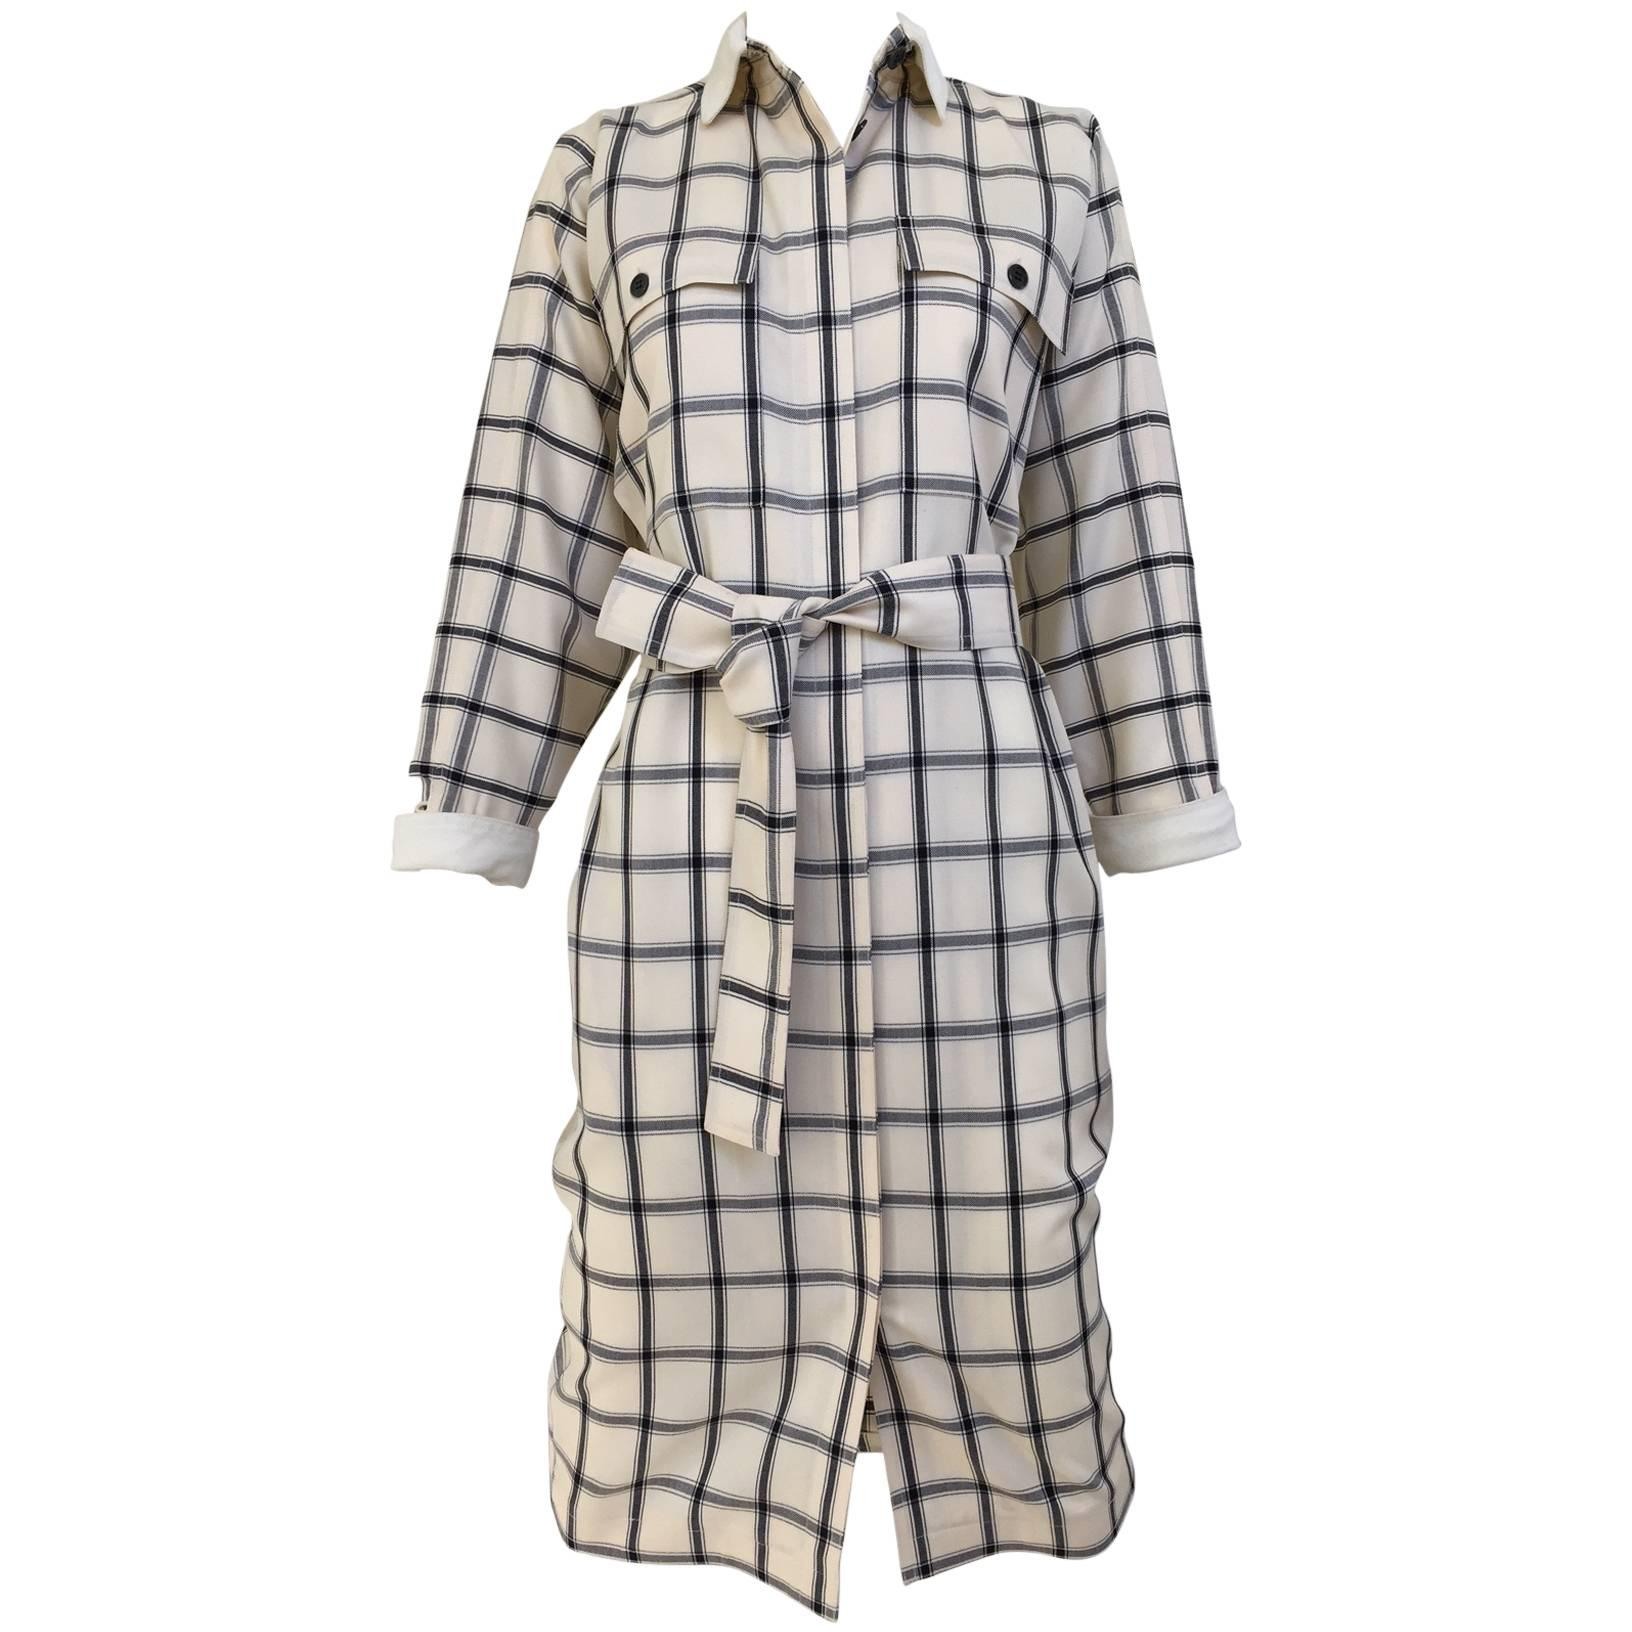 Vintage 1970s GUCCI Creme and Blue Plaid Linen 70s Day Dress